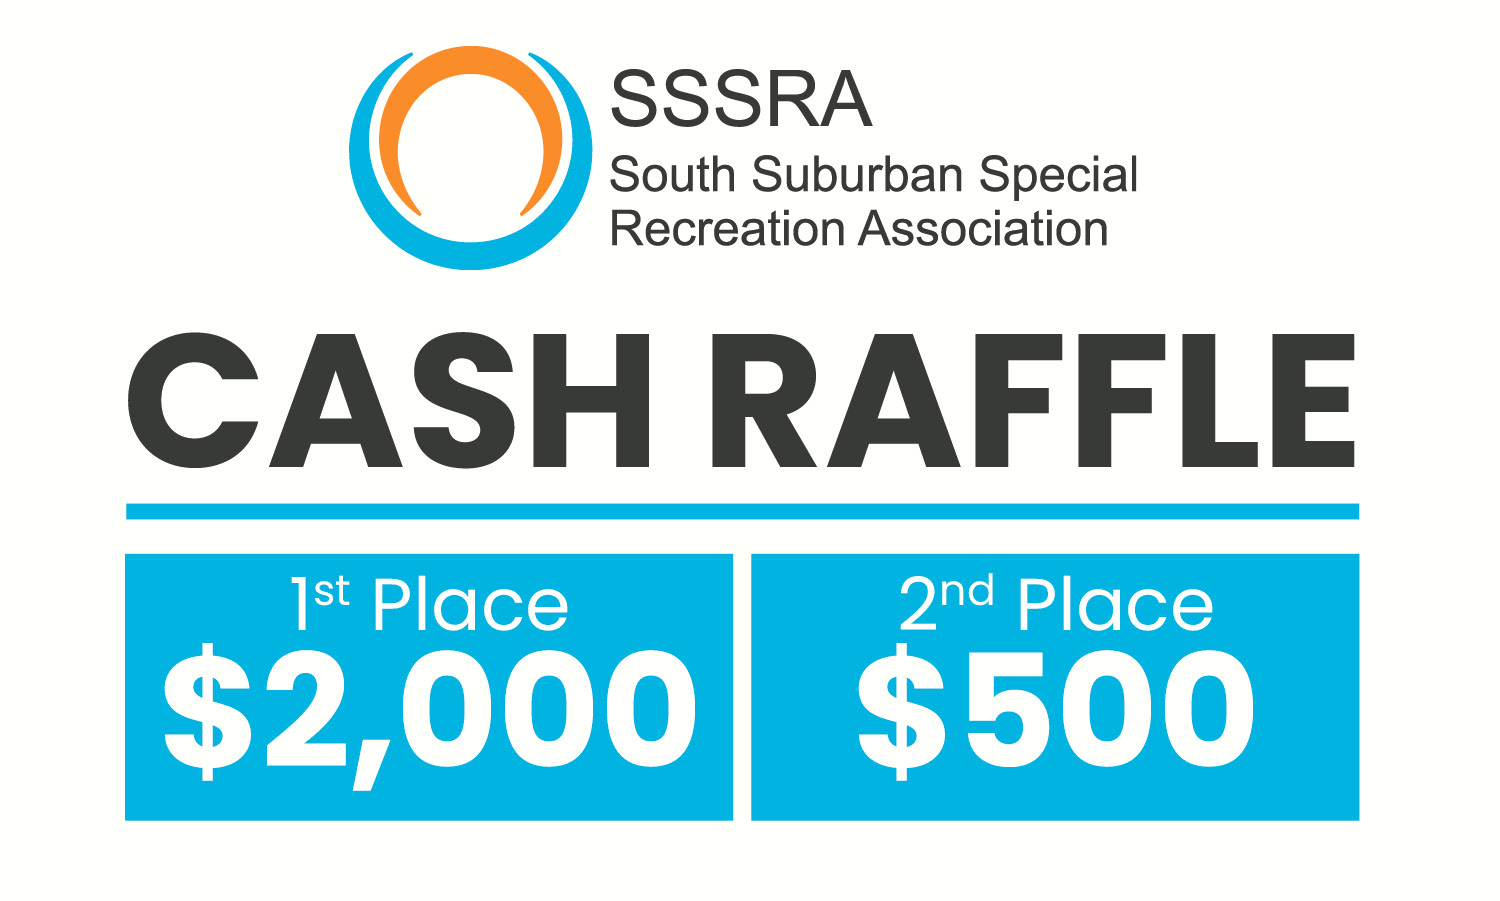 Cash Raffle Advertisement. 1st Place is $2,000. 2nd Place is $500.